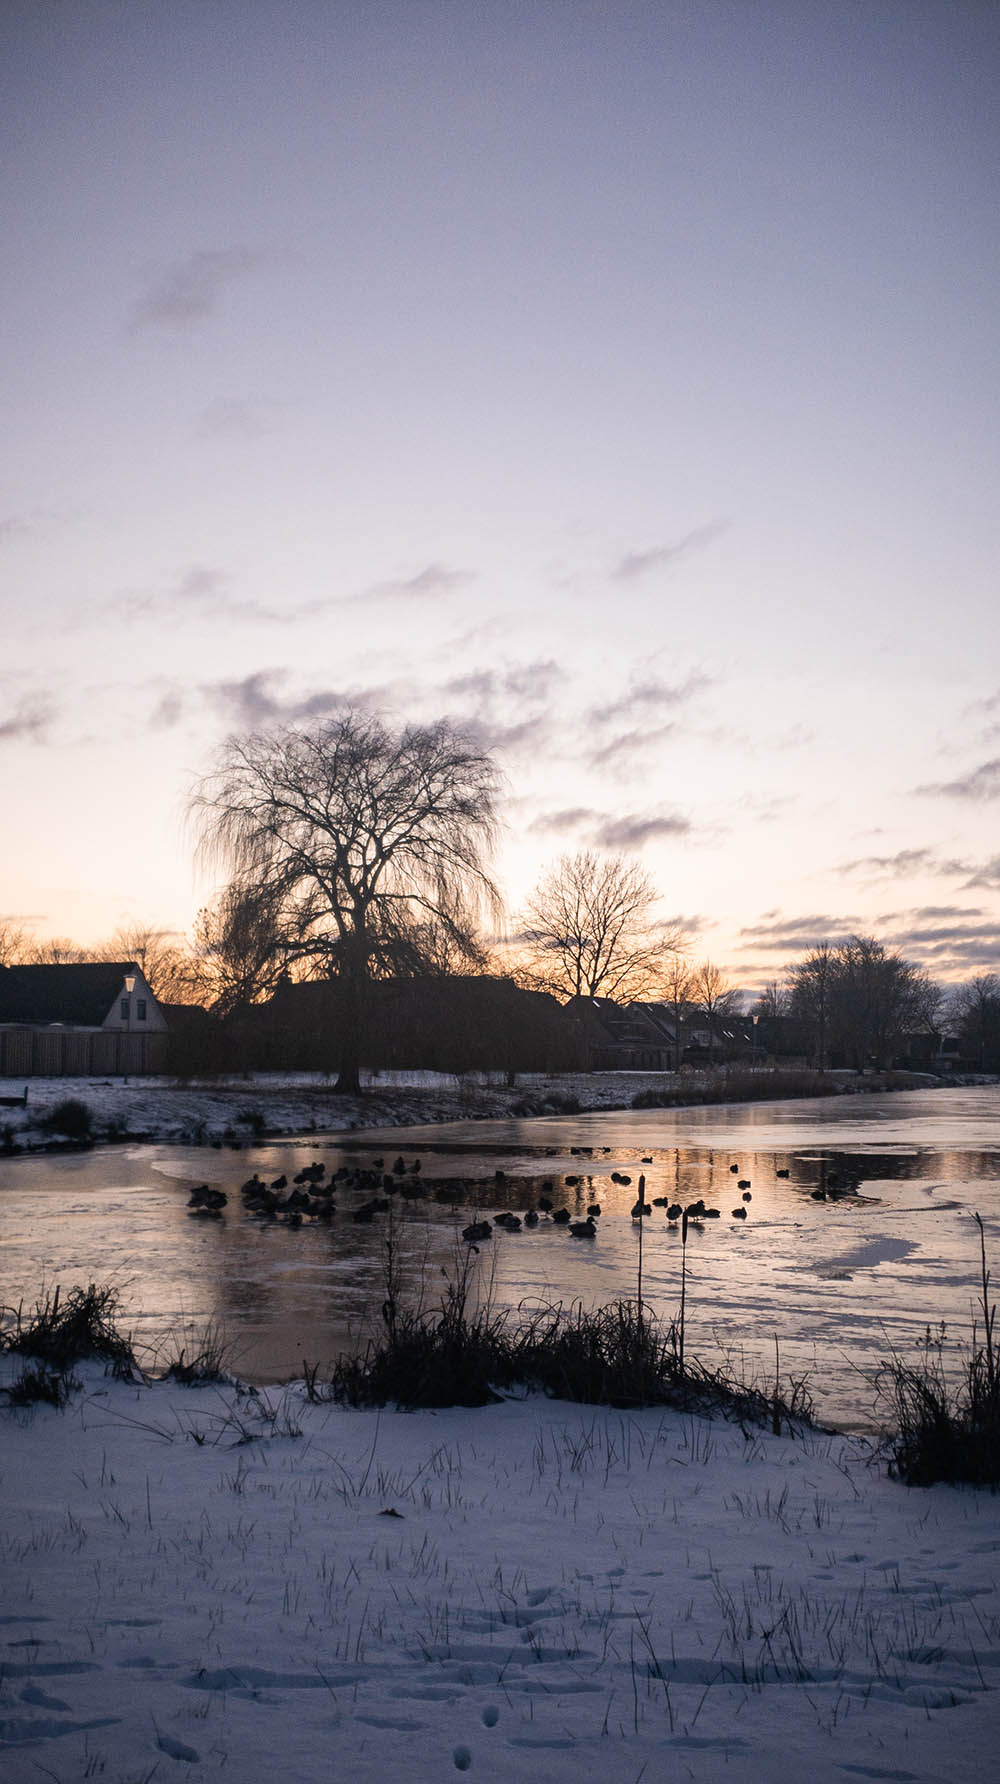 A canal, partly frozen, with water birds.